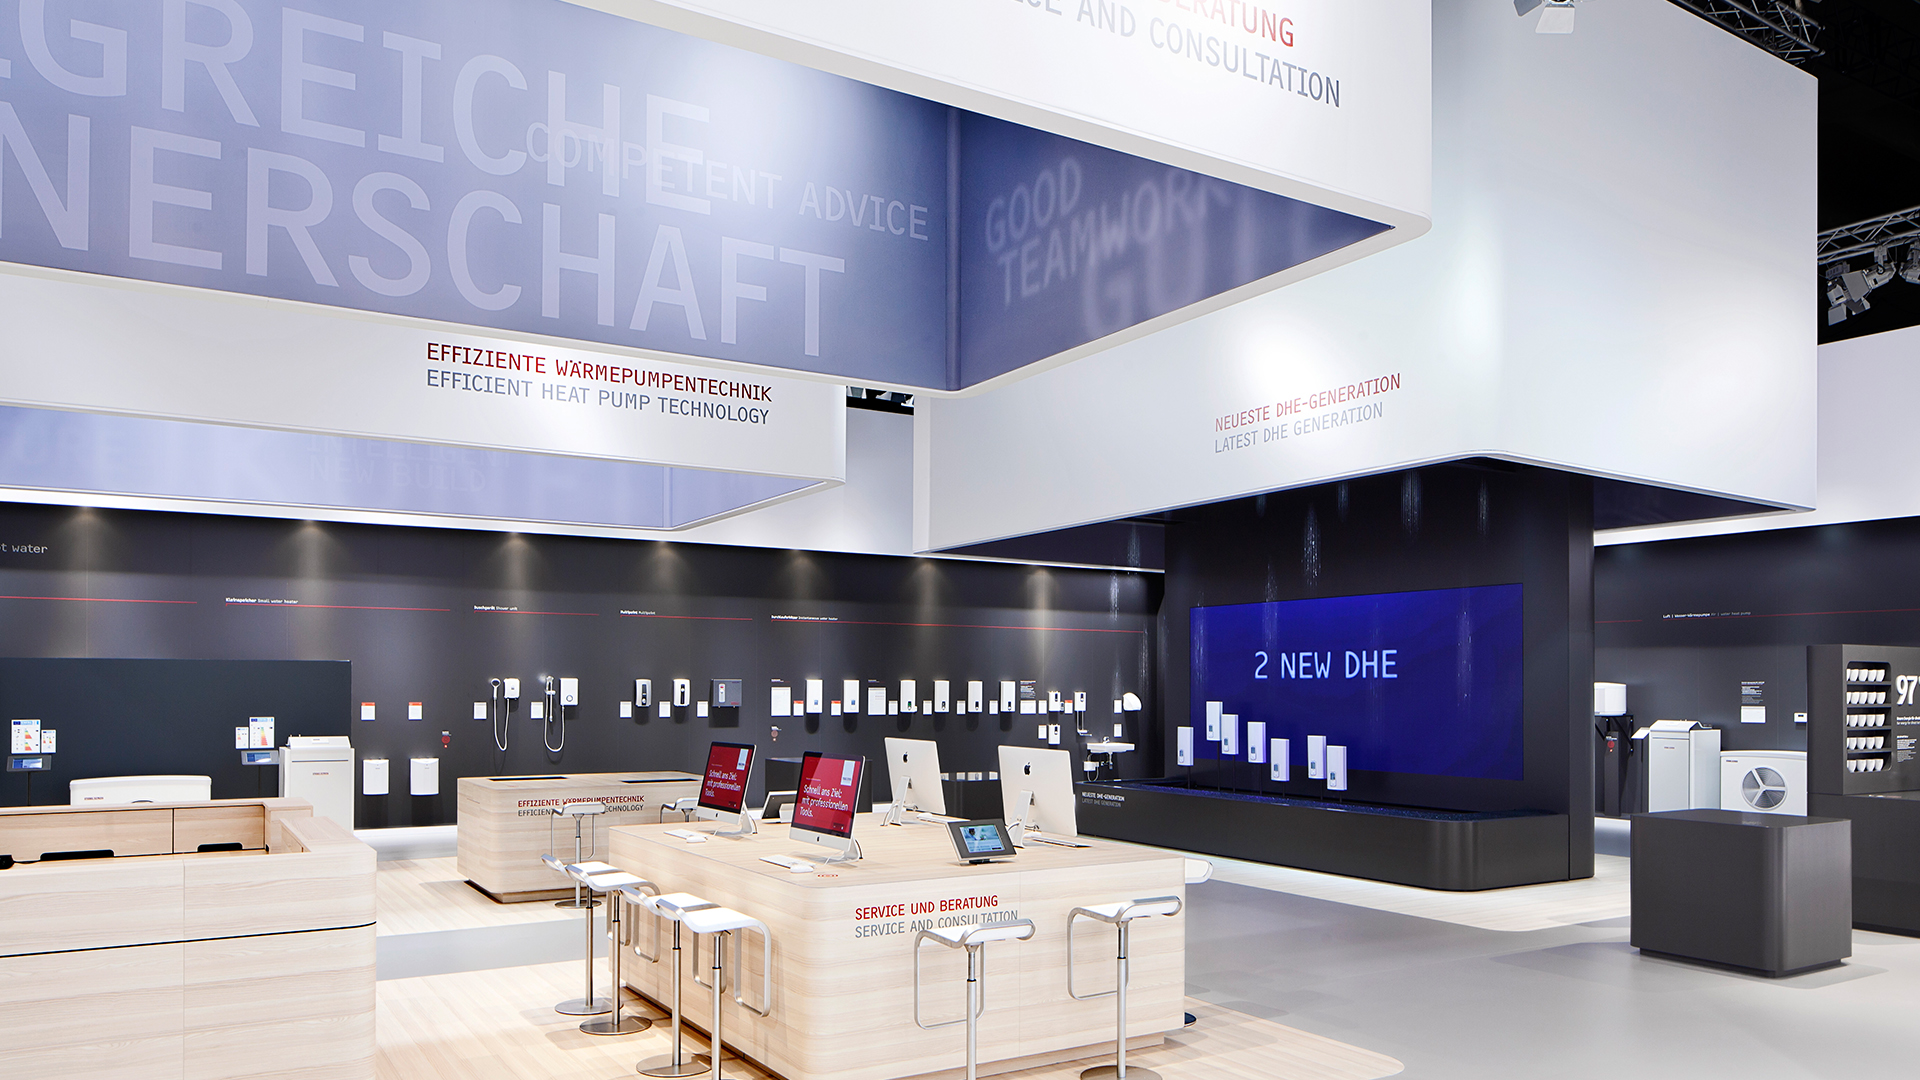 Dart stages the STIEBEL ELTRON fair stand at the ISH 2015